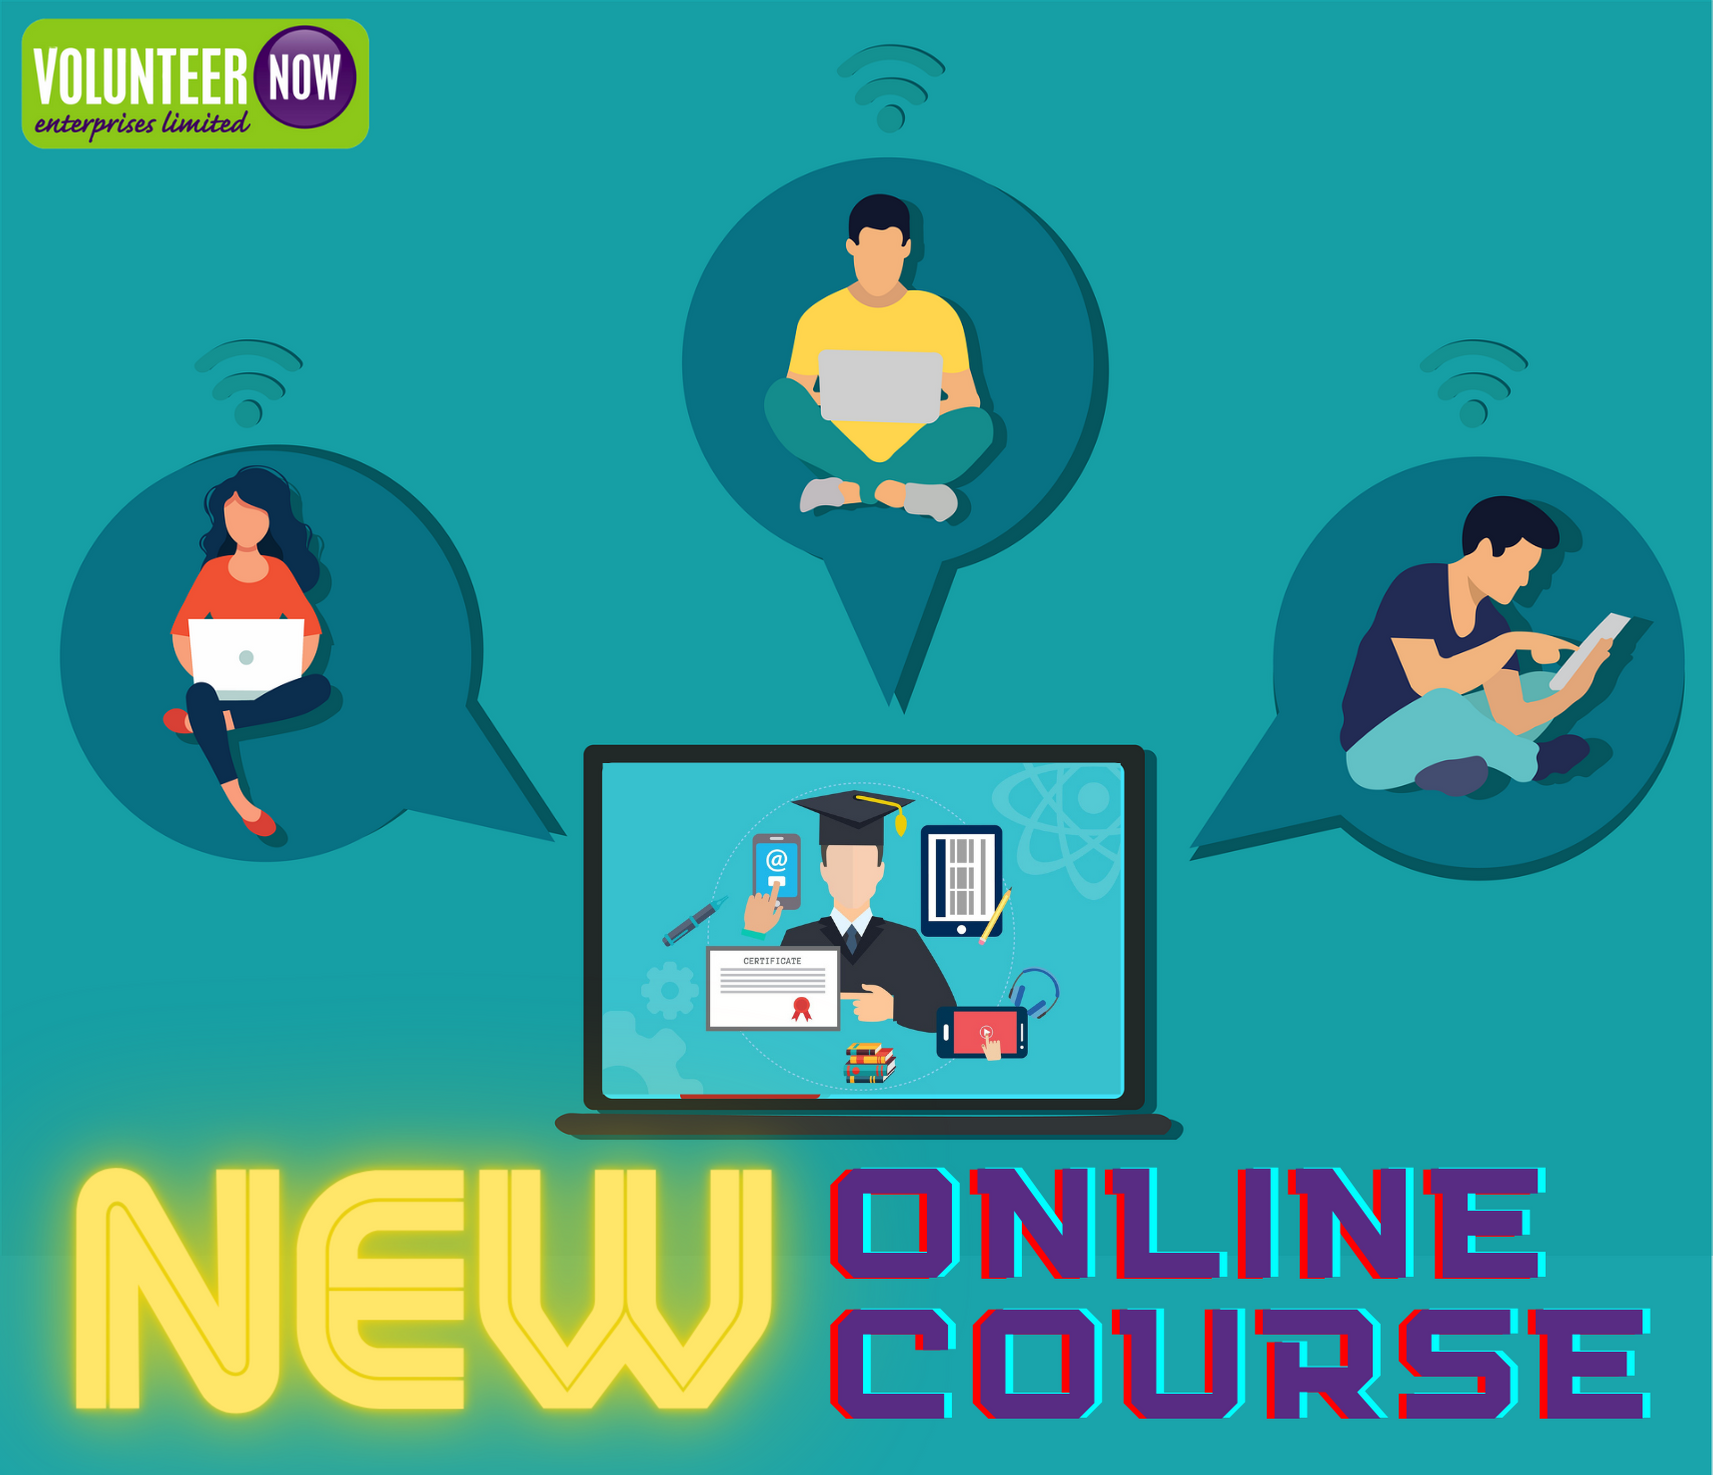 Attracting & Selecting Volunteers Online Course